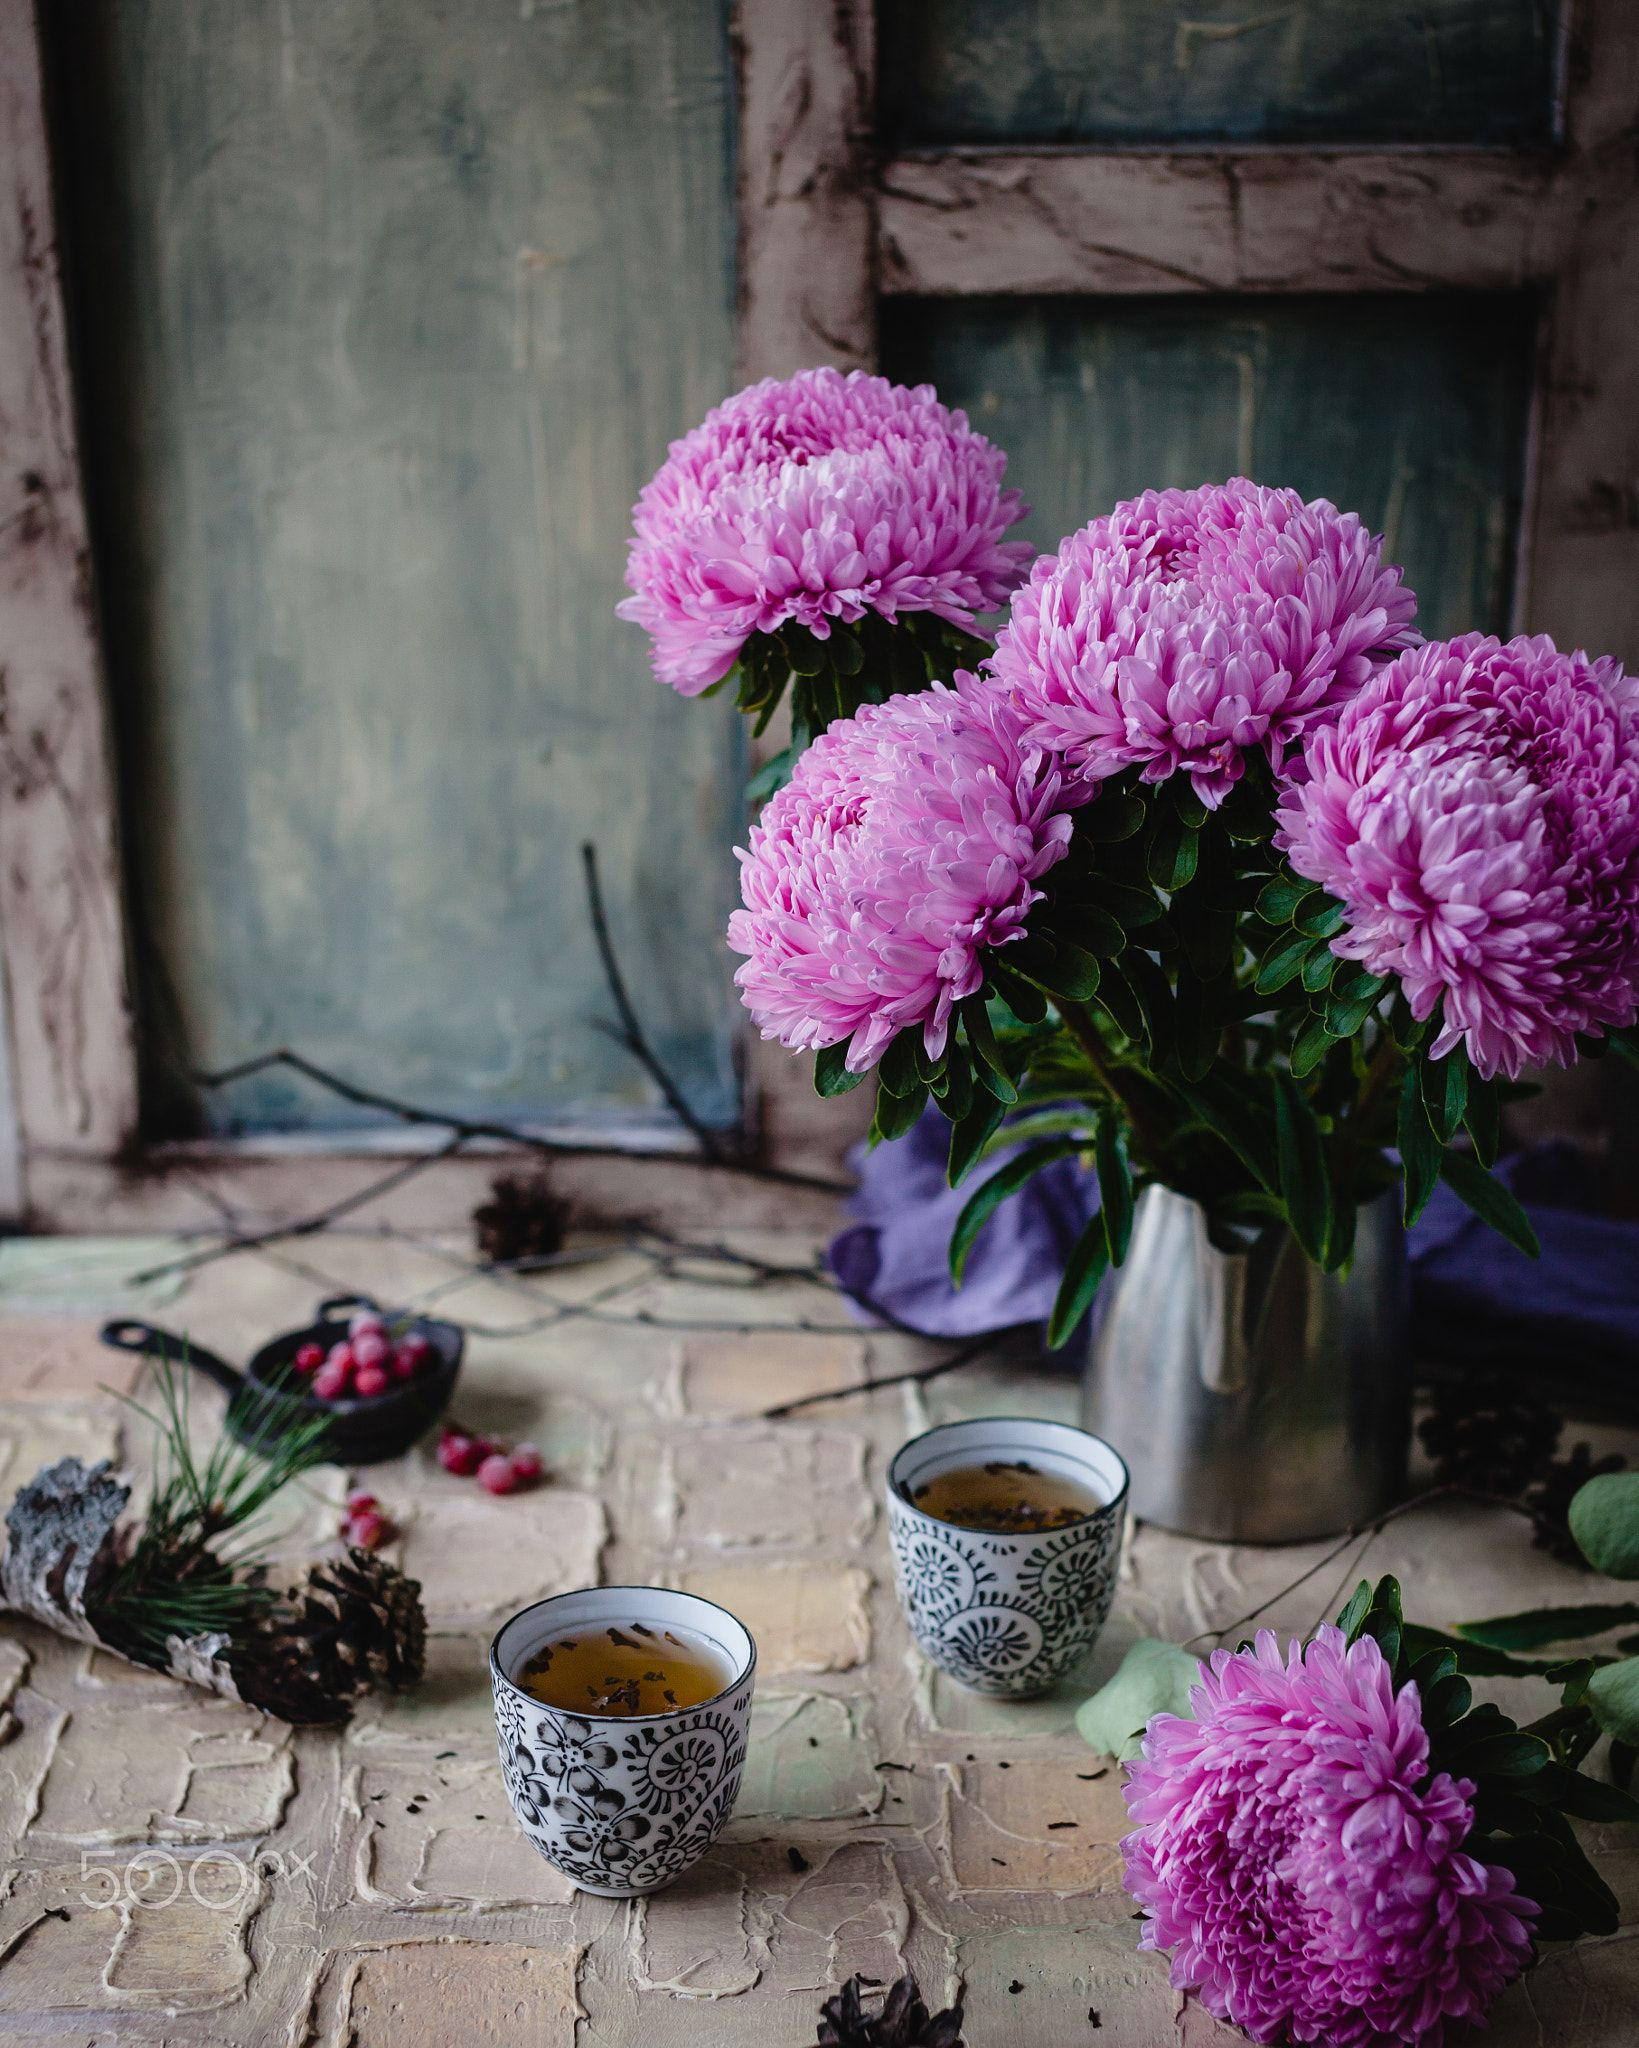 August Tea Still Life With Aster Flowers And Herbal Tea Aster Flower Still Life Photography Flowers